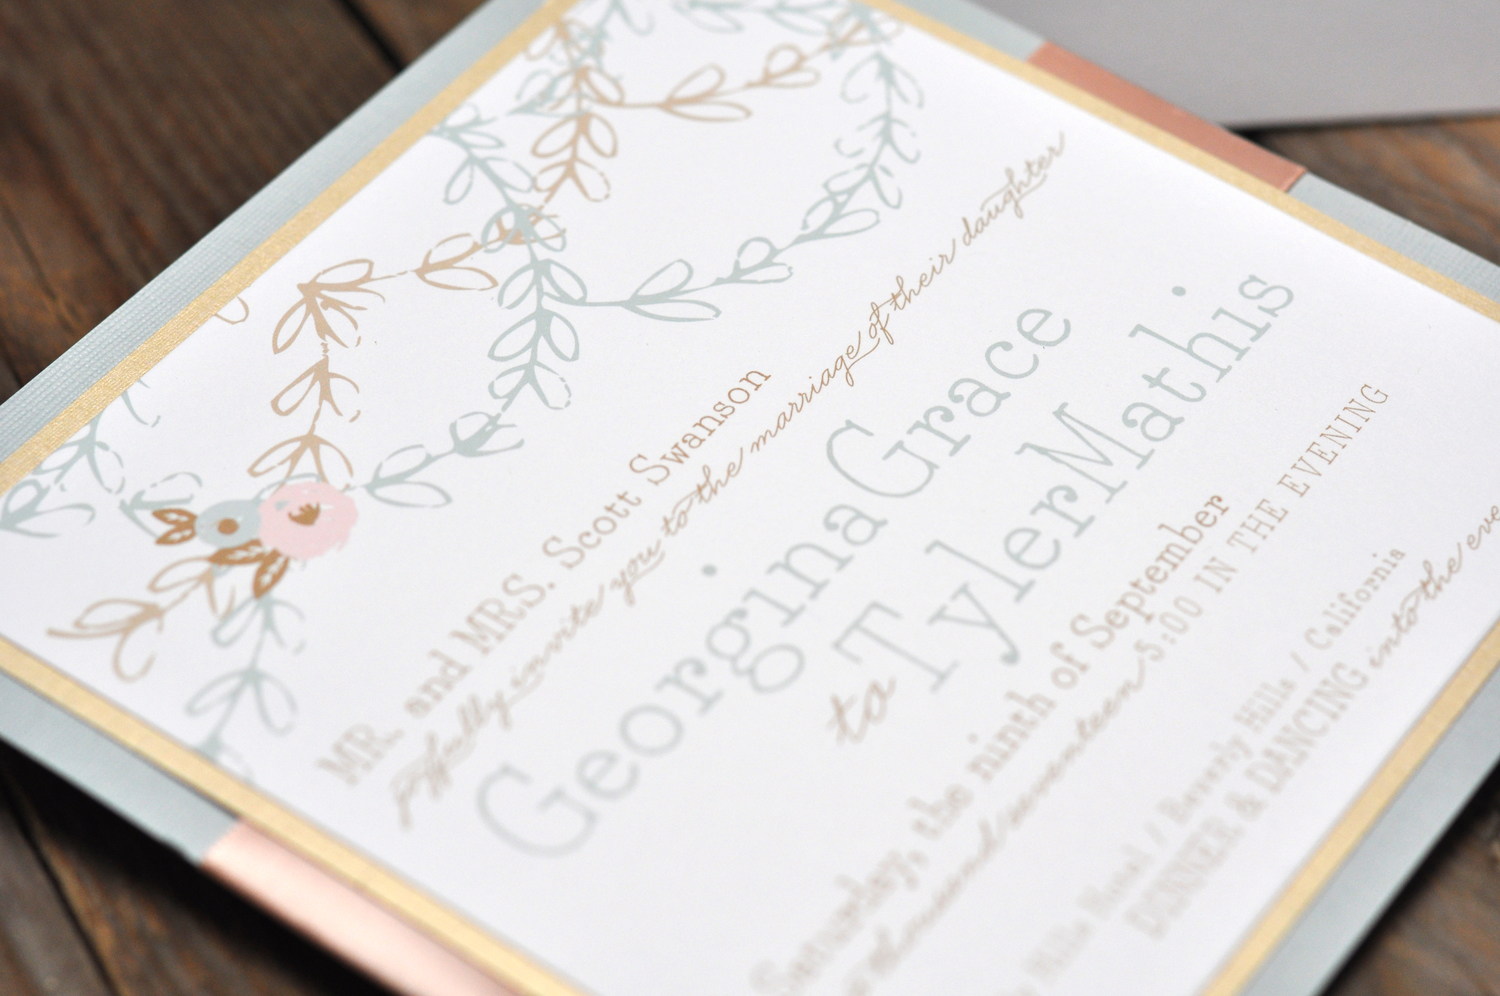 Georgina by BTElements, Pastel invitation with floral details, layered paper and ribbon, Whimsical typesetting, slate blue, pink, gold and white color palette